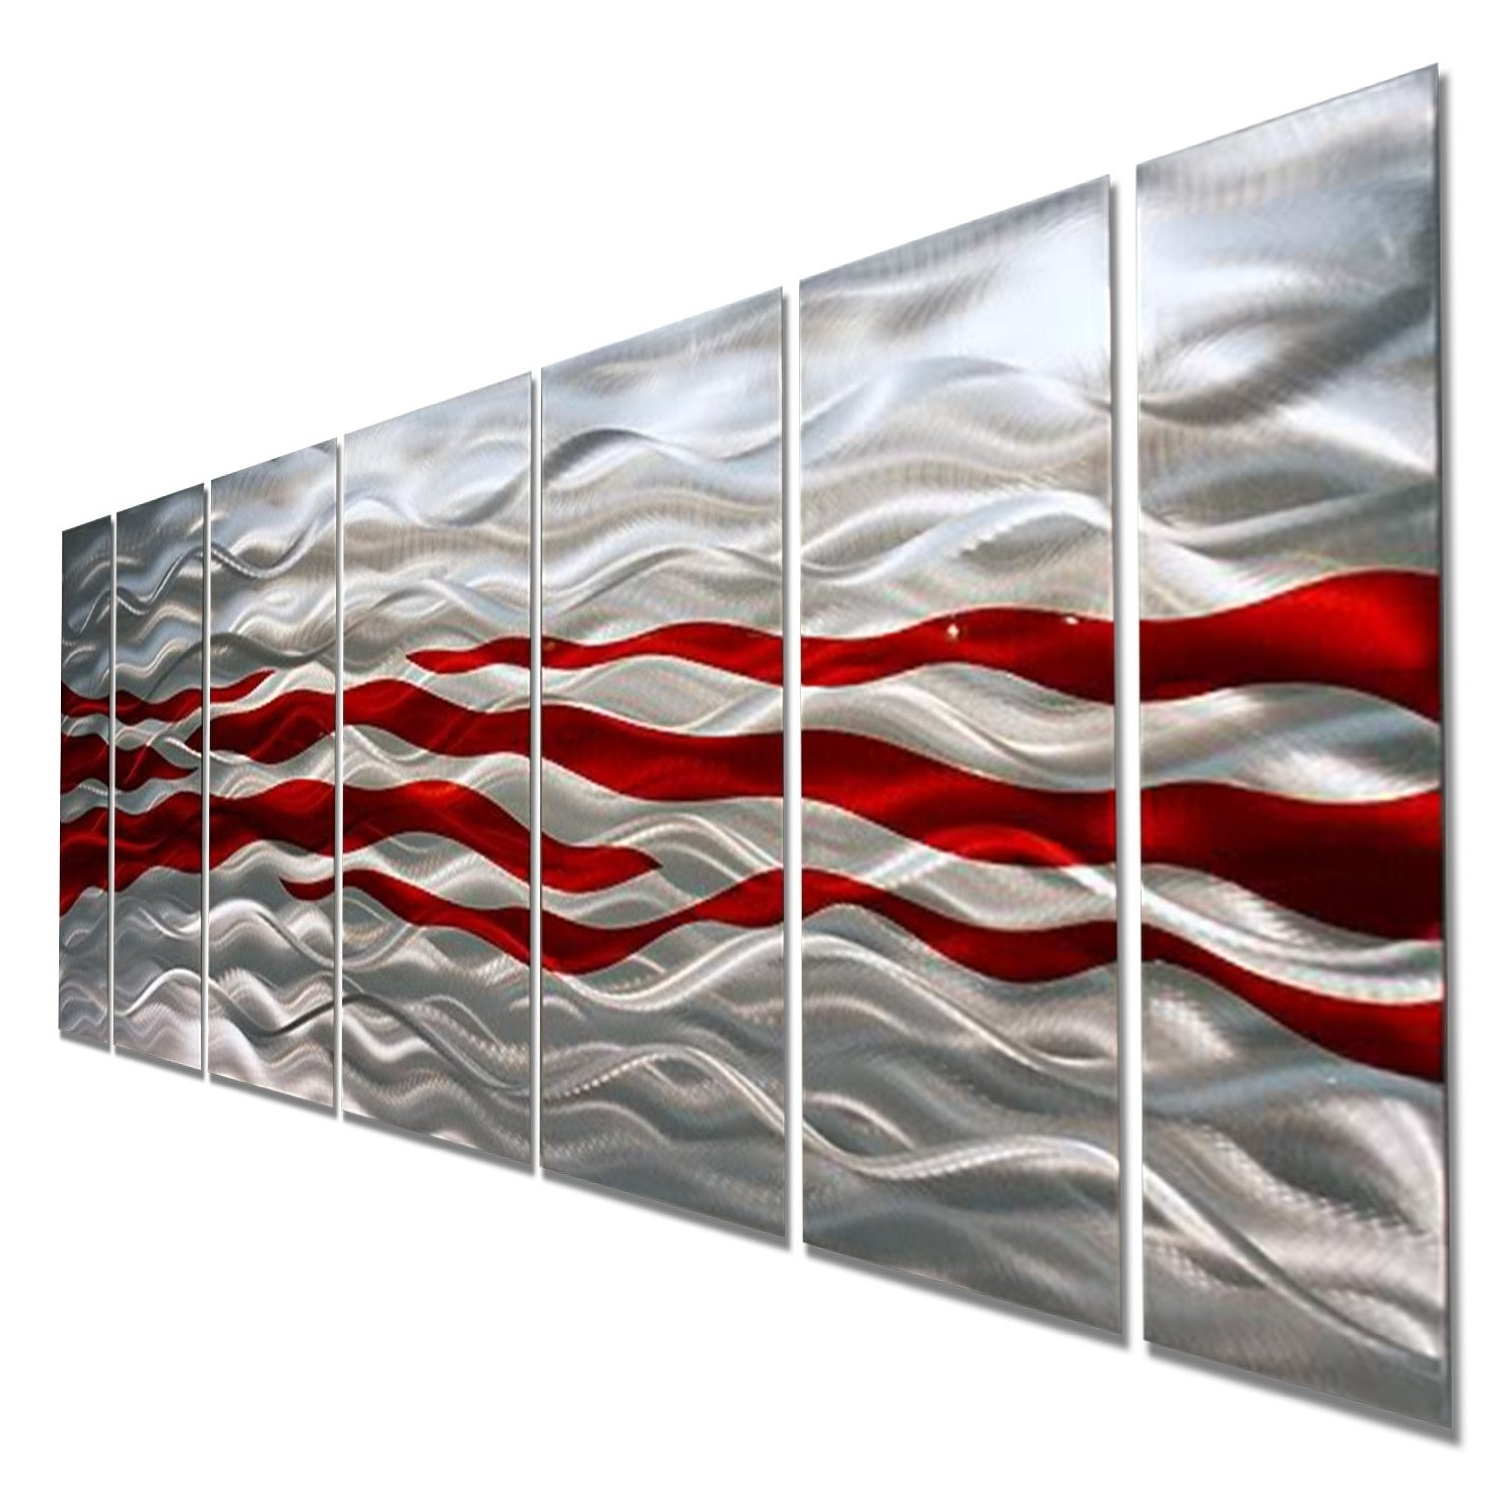 Caliente – Red & Silver Modern Abstract Metal Wall Artjon Allen Regarding Trendy Metal Wall Art Panels (View 2 of 15)